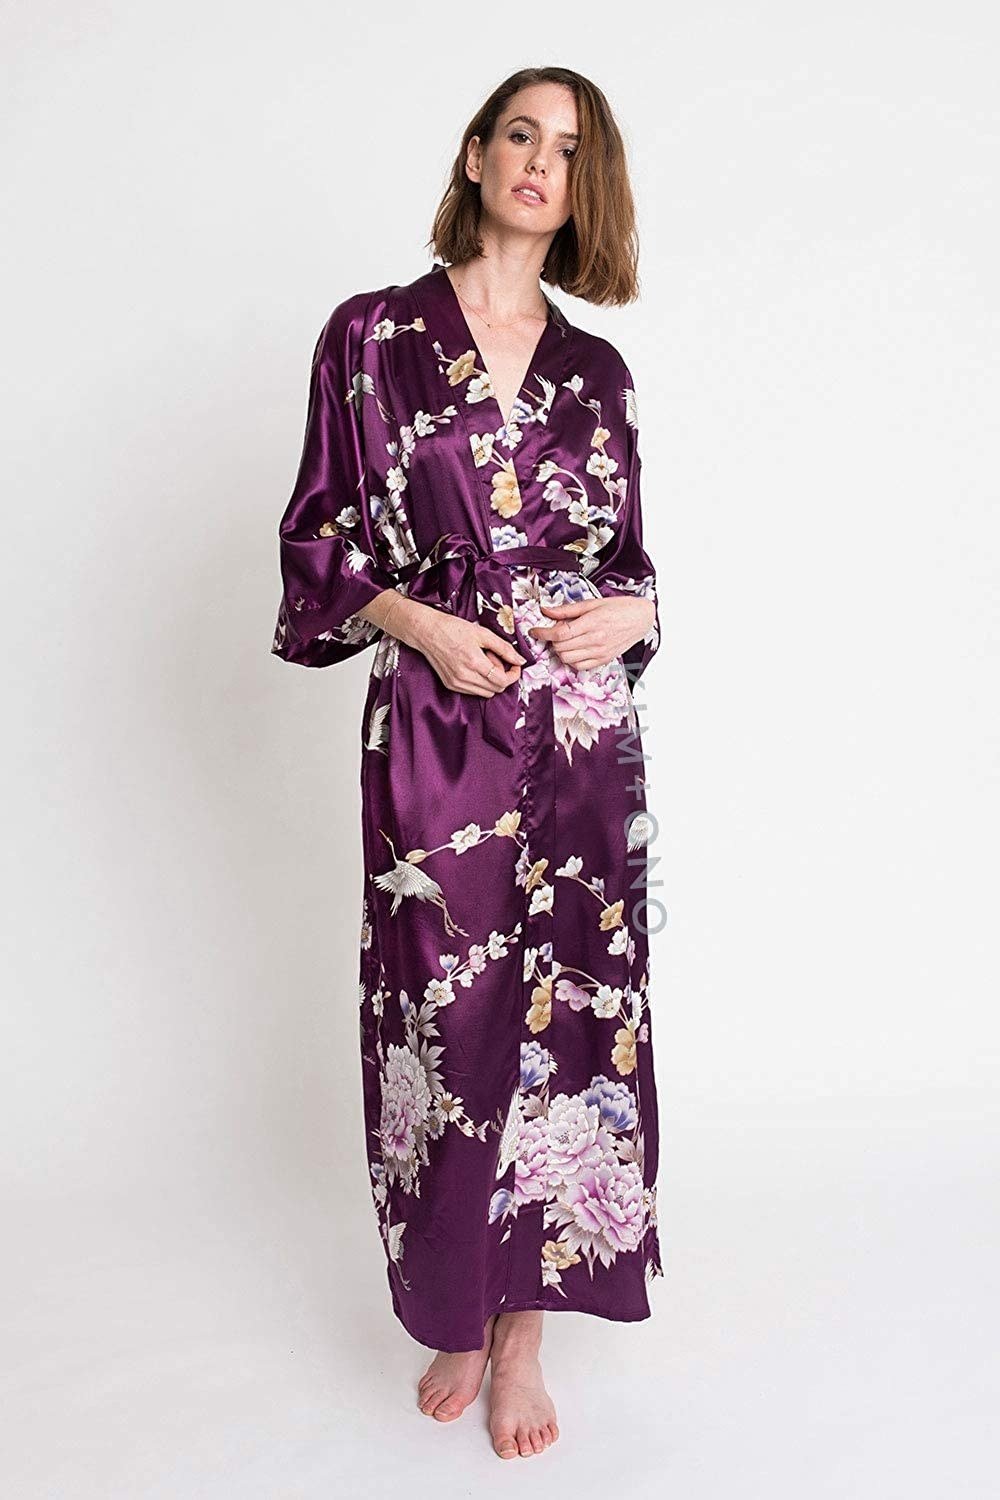 A model wears the KIM+ONO satin kimono robe in the plum Chrysanthemum & Crane design